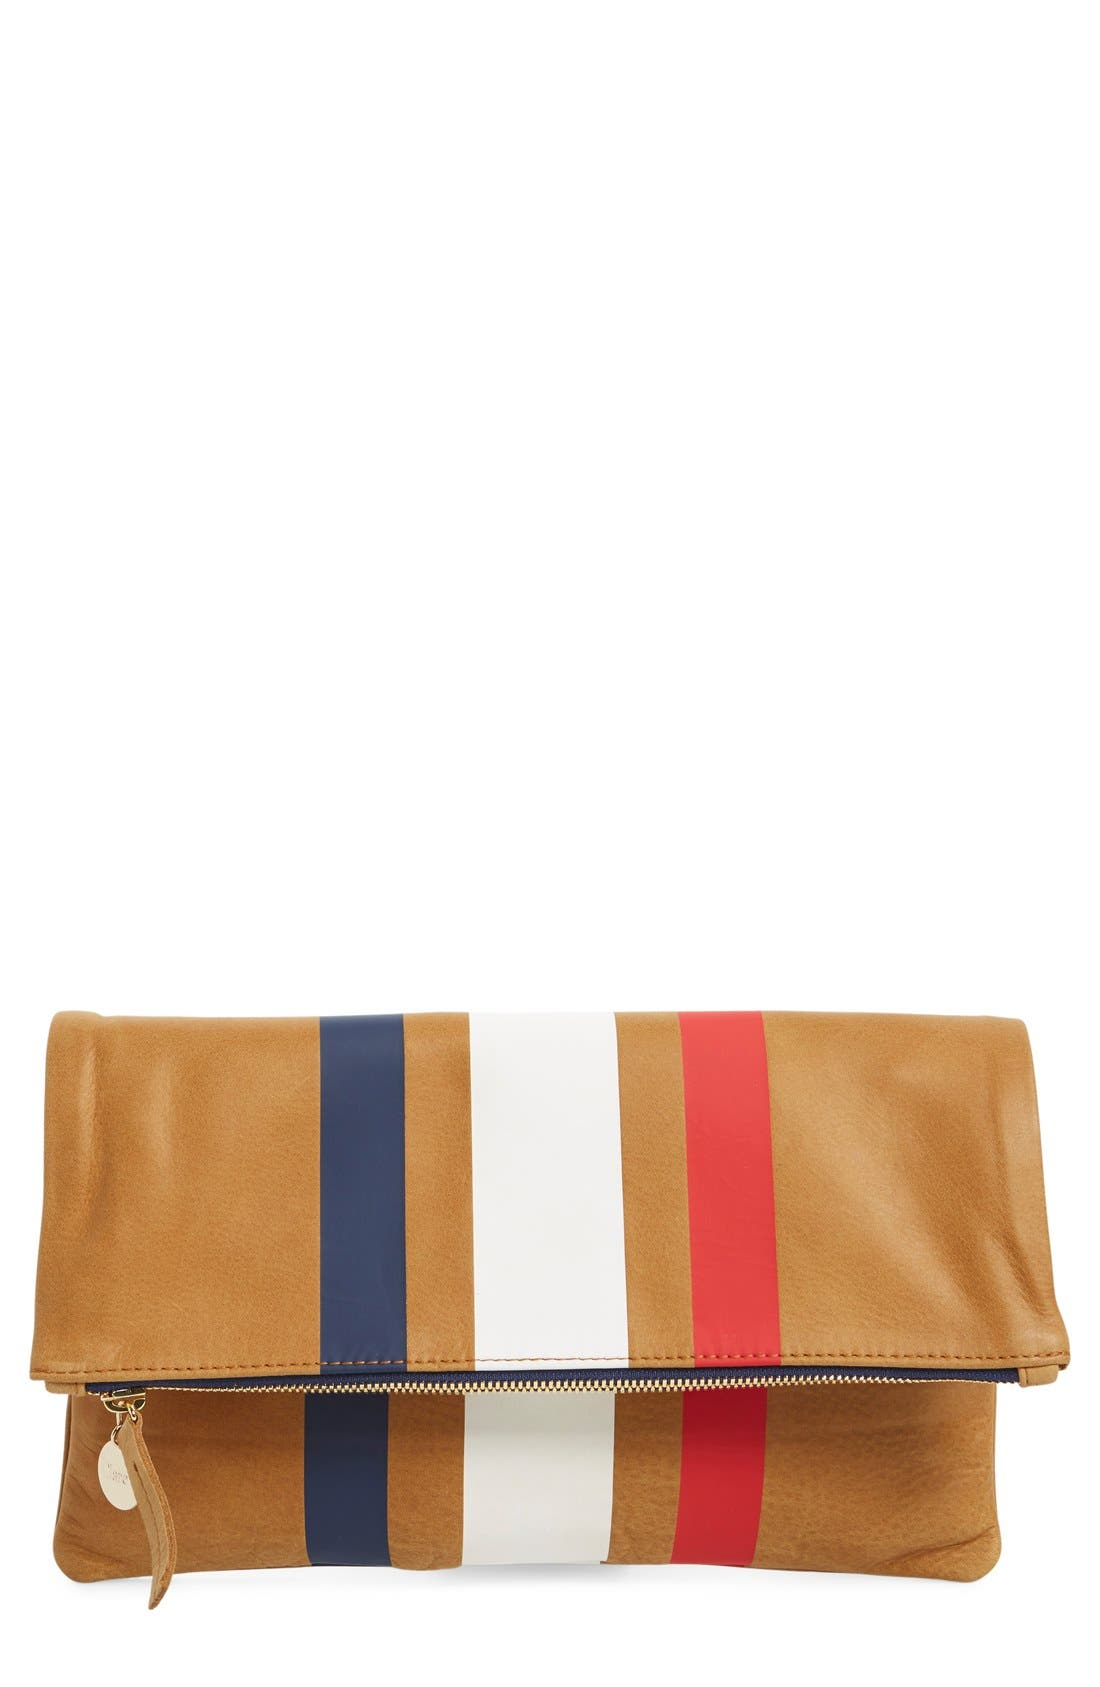 Alternate Image 1 Selected - Clare V. 'Supreme' Stripe Leather Foldover Clutch